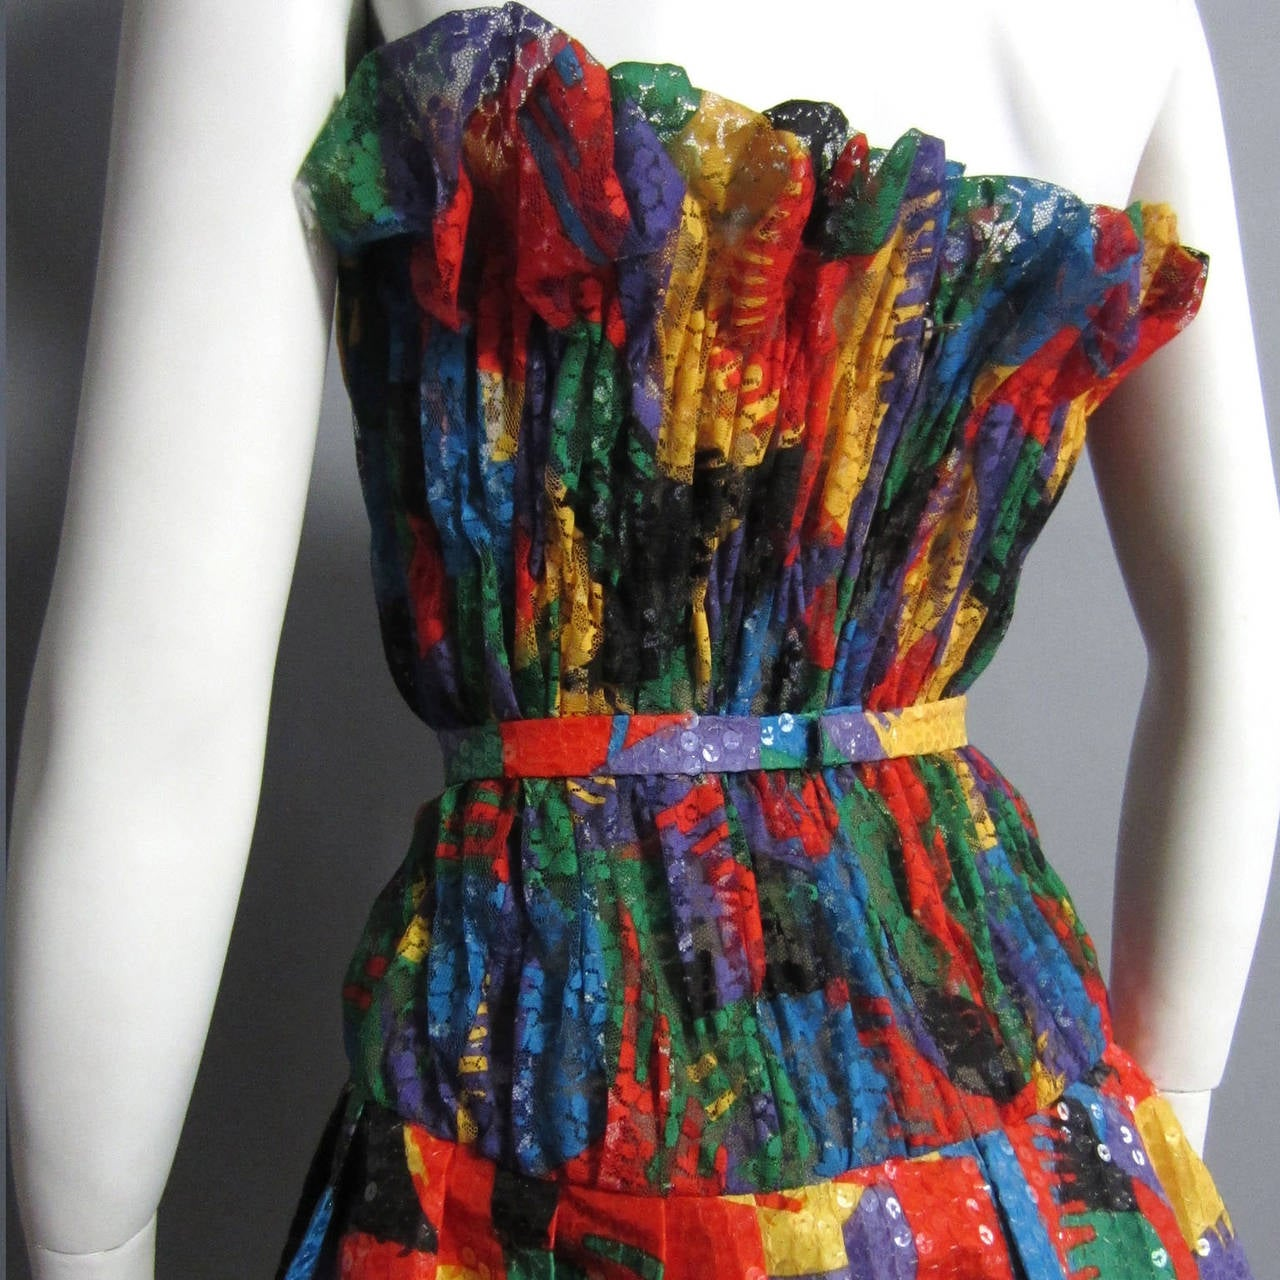 Women's SCAASI Multi Color Lace and Sequin Cocktail Dress For Sale